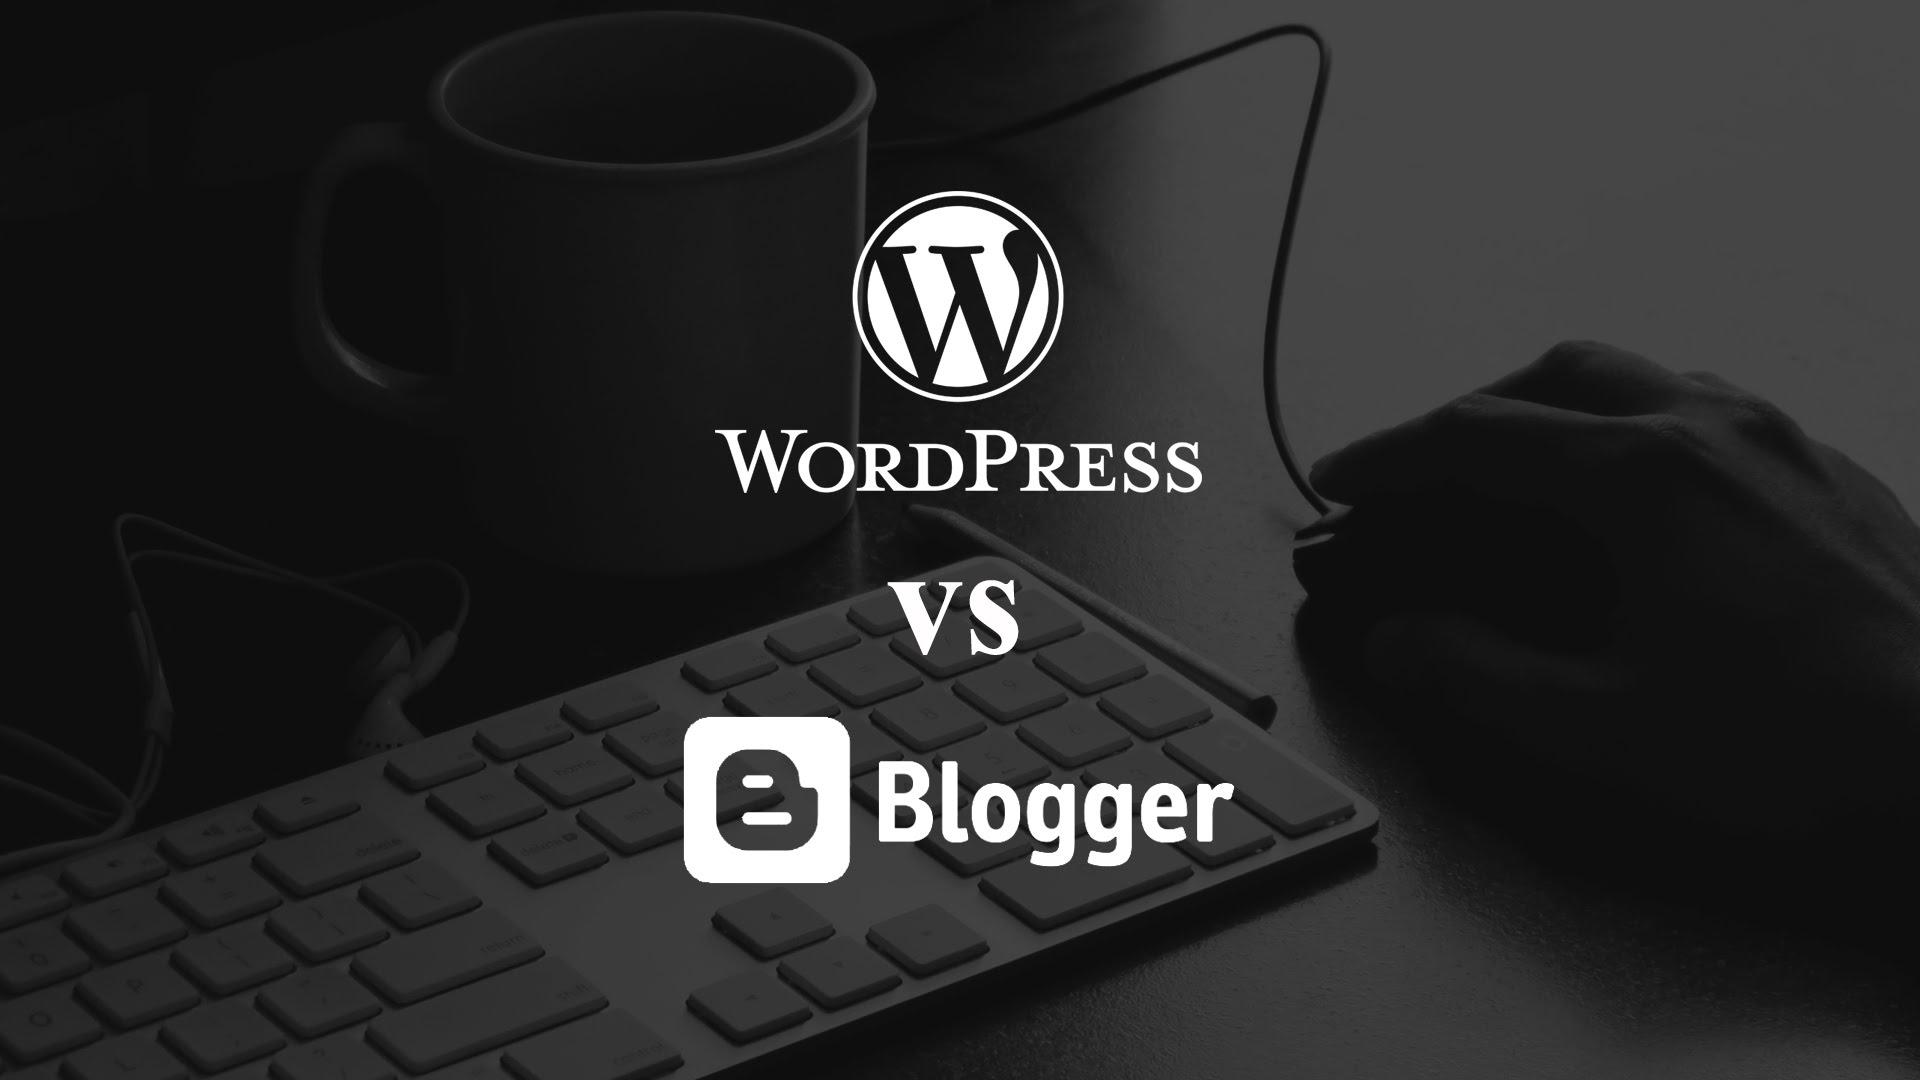 Choosing between WordPress and Blogger